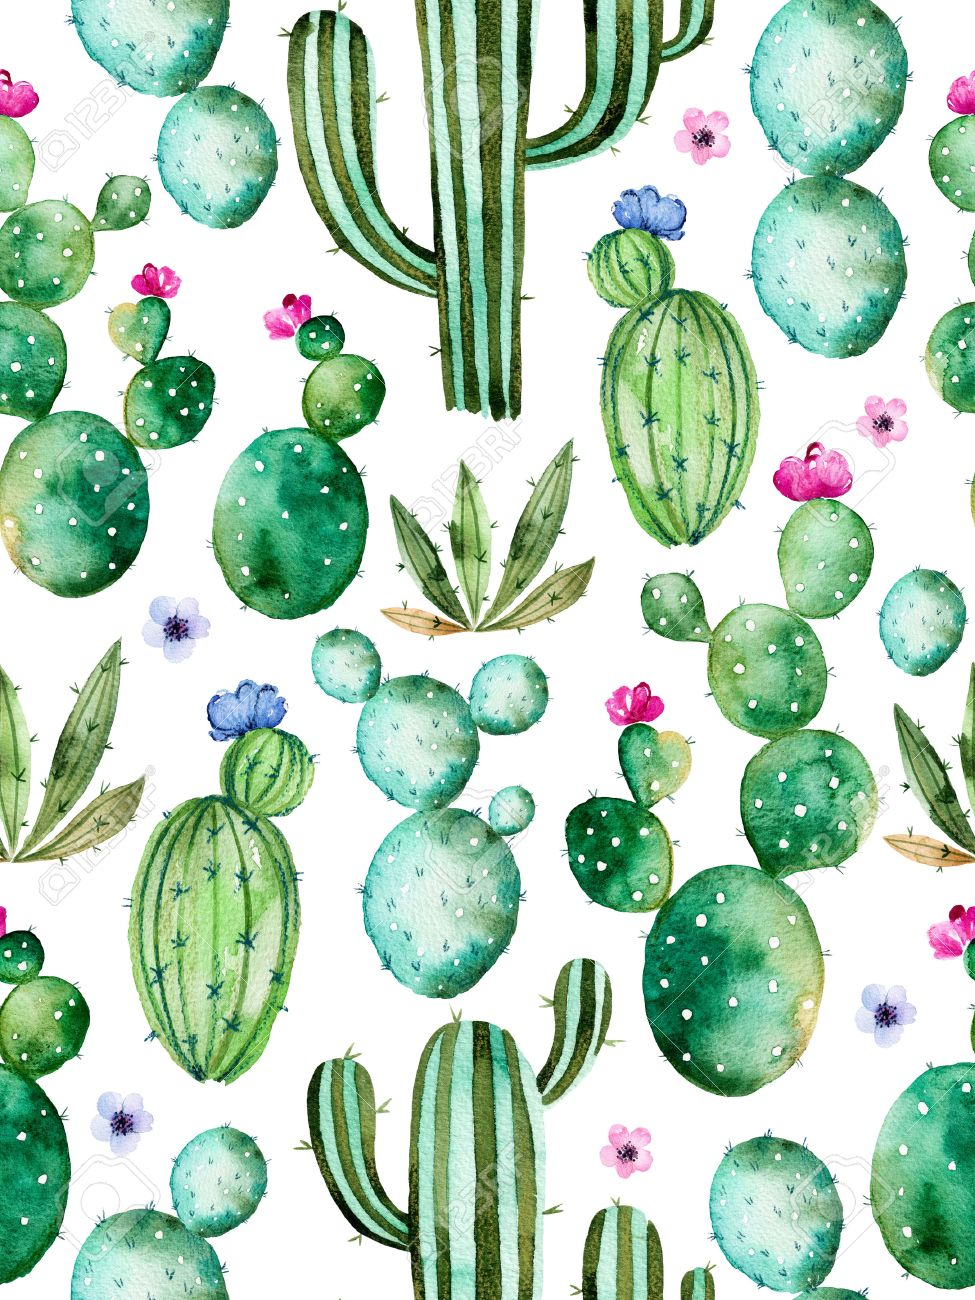 Good Wallpaper High Quality Pastel - 55613184-seamless-pattern-with-high-quality-hand-painted-watercolor-cactus-plants-and-purple-colors-flowers-p  Perfect Image Reference_35746.jpg